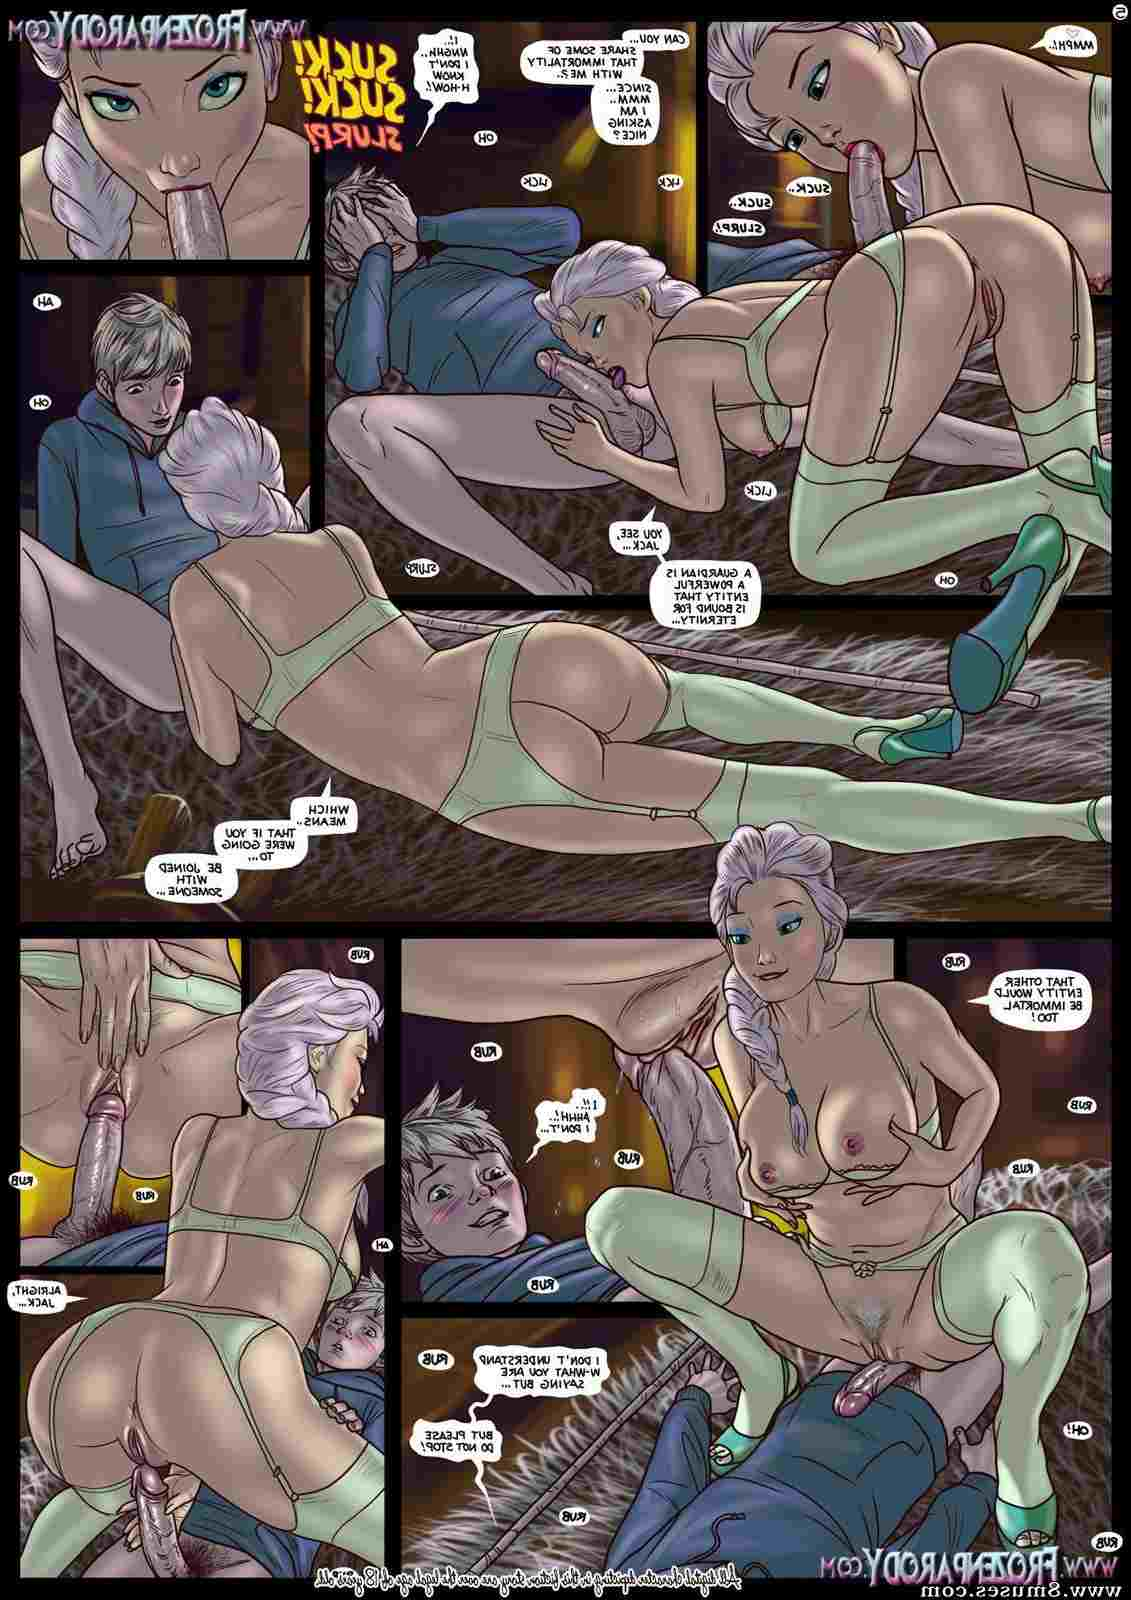 Frozen-Parody-Comics/Frozen-Parody-12-Elsa-Meet-Jack Frozen_Parody_12_-_Elsa_Meet_Jack__8muses_-_Sex_and_Porn_Comics_5.jpg